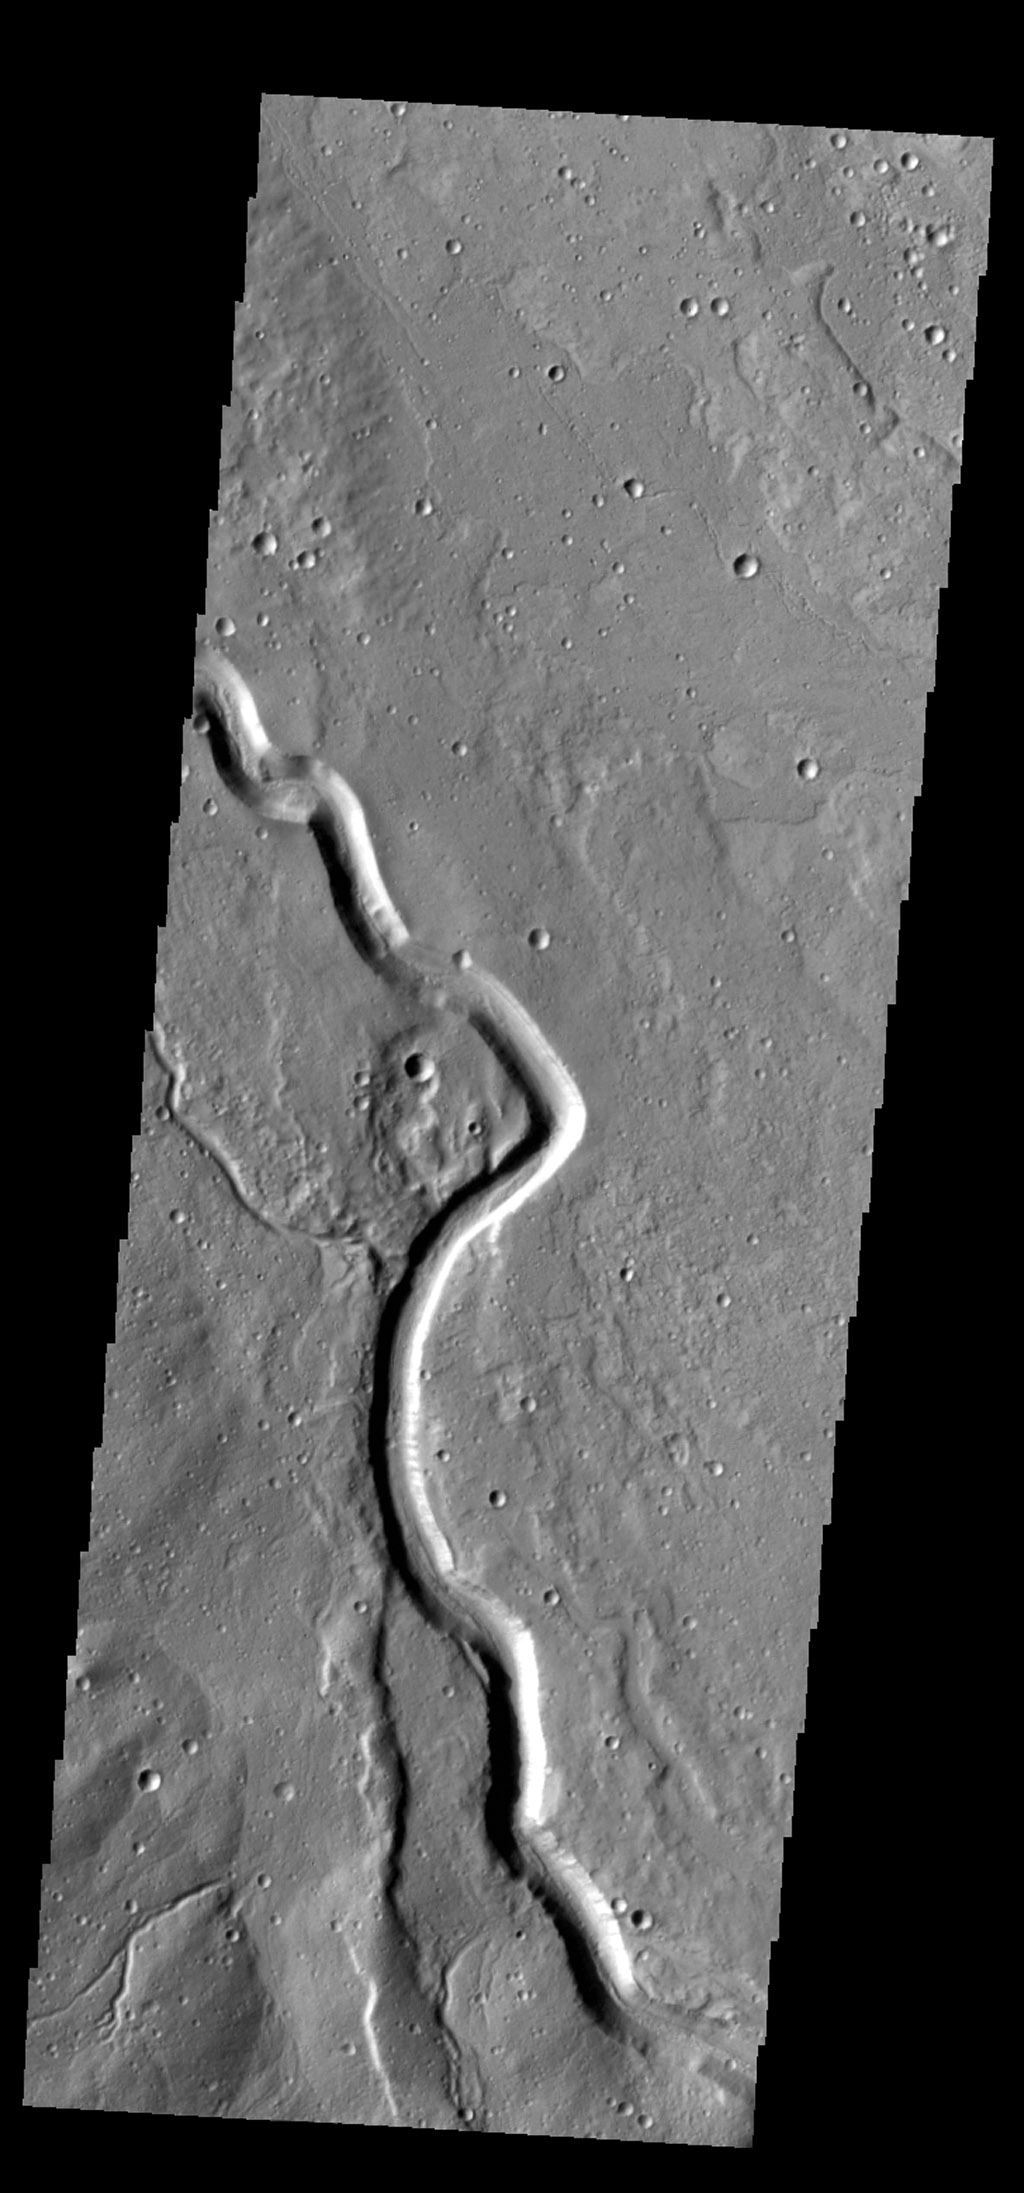 This image captured by NASA's 2001 Mars Odyssey spacecraft shows part of Buvinda Vallis, located just outside the northeastern flank of Hecates Tholus.